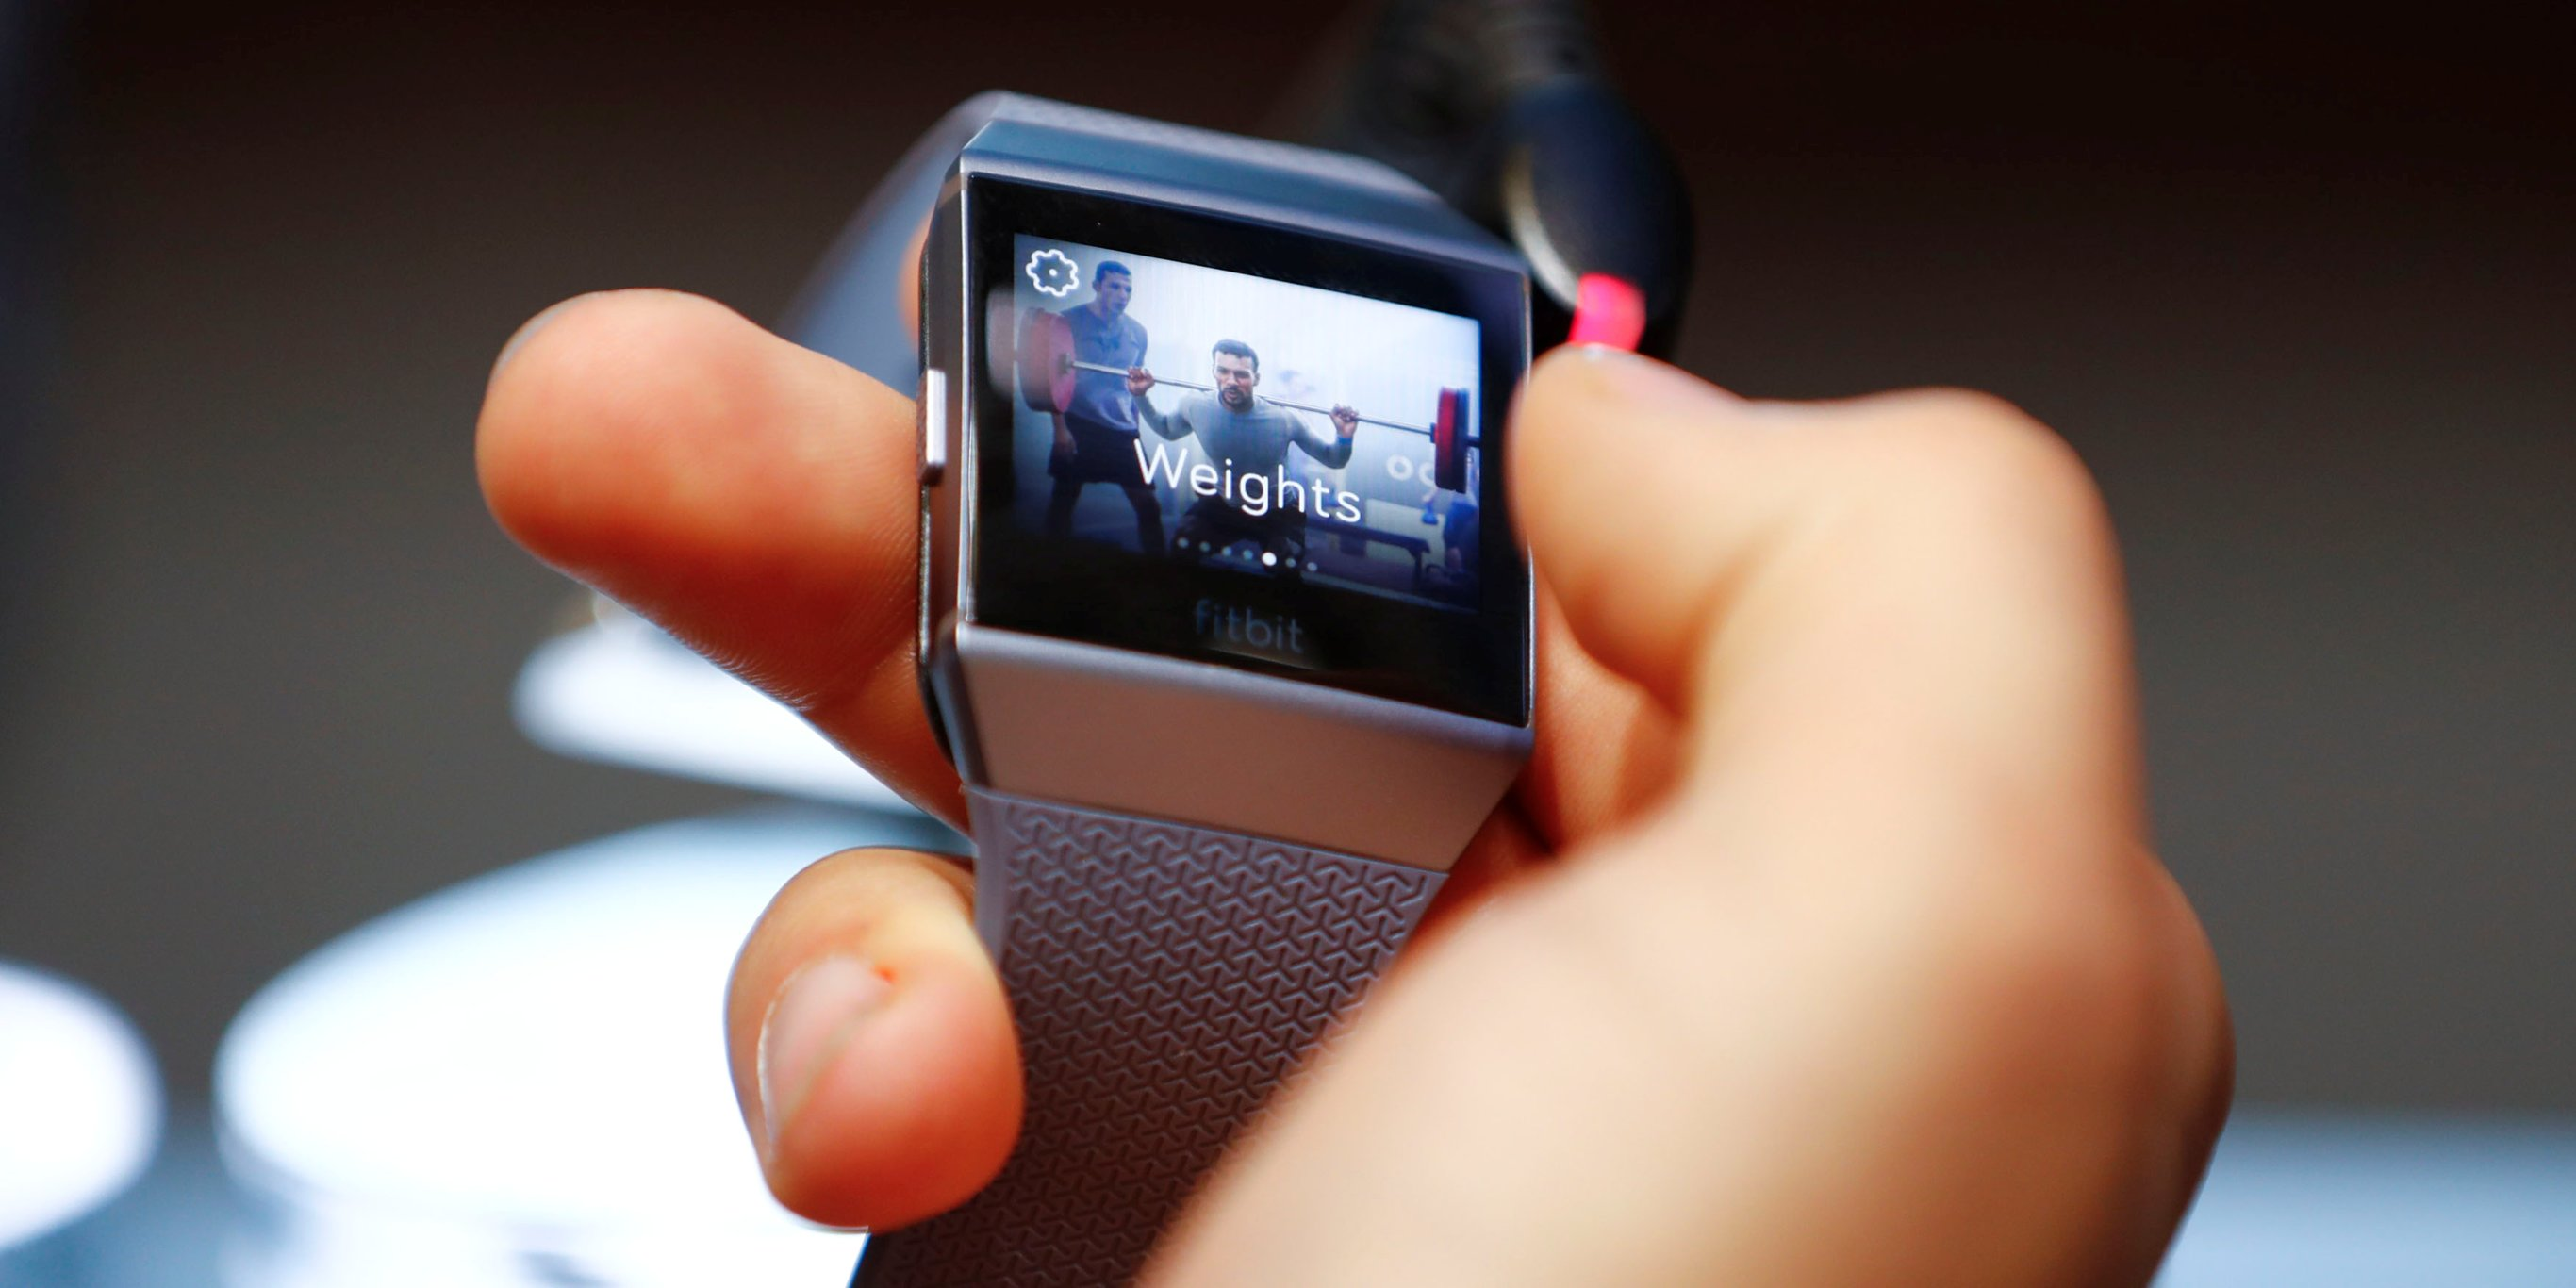 Fitbit's 2-day surge hits 19% on reports the company is seeking a sale — and its bankers are eyeing a Google takeover (FIT)